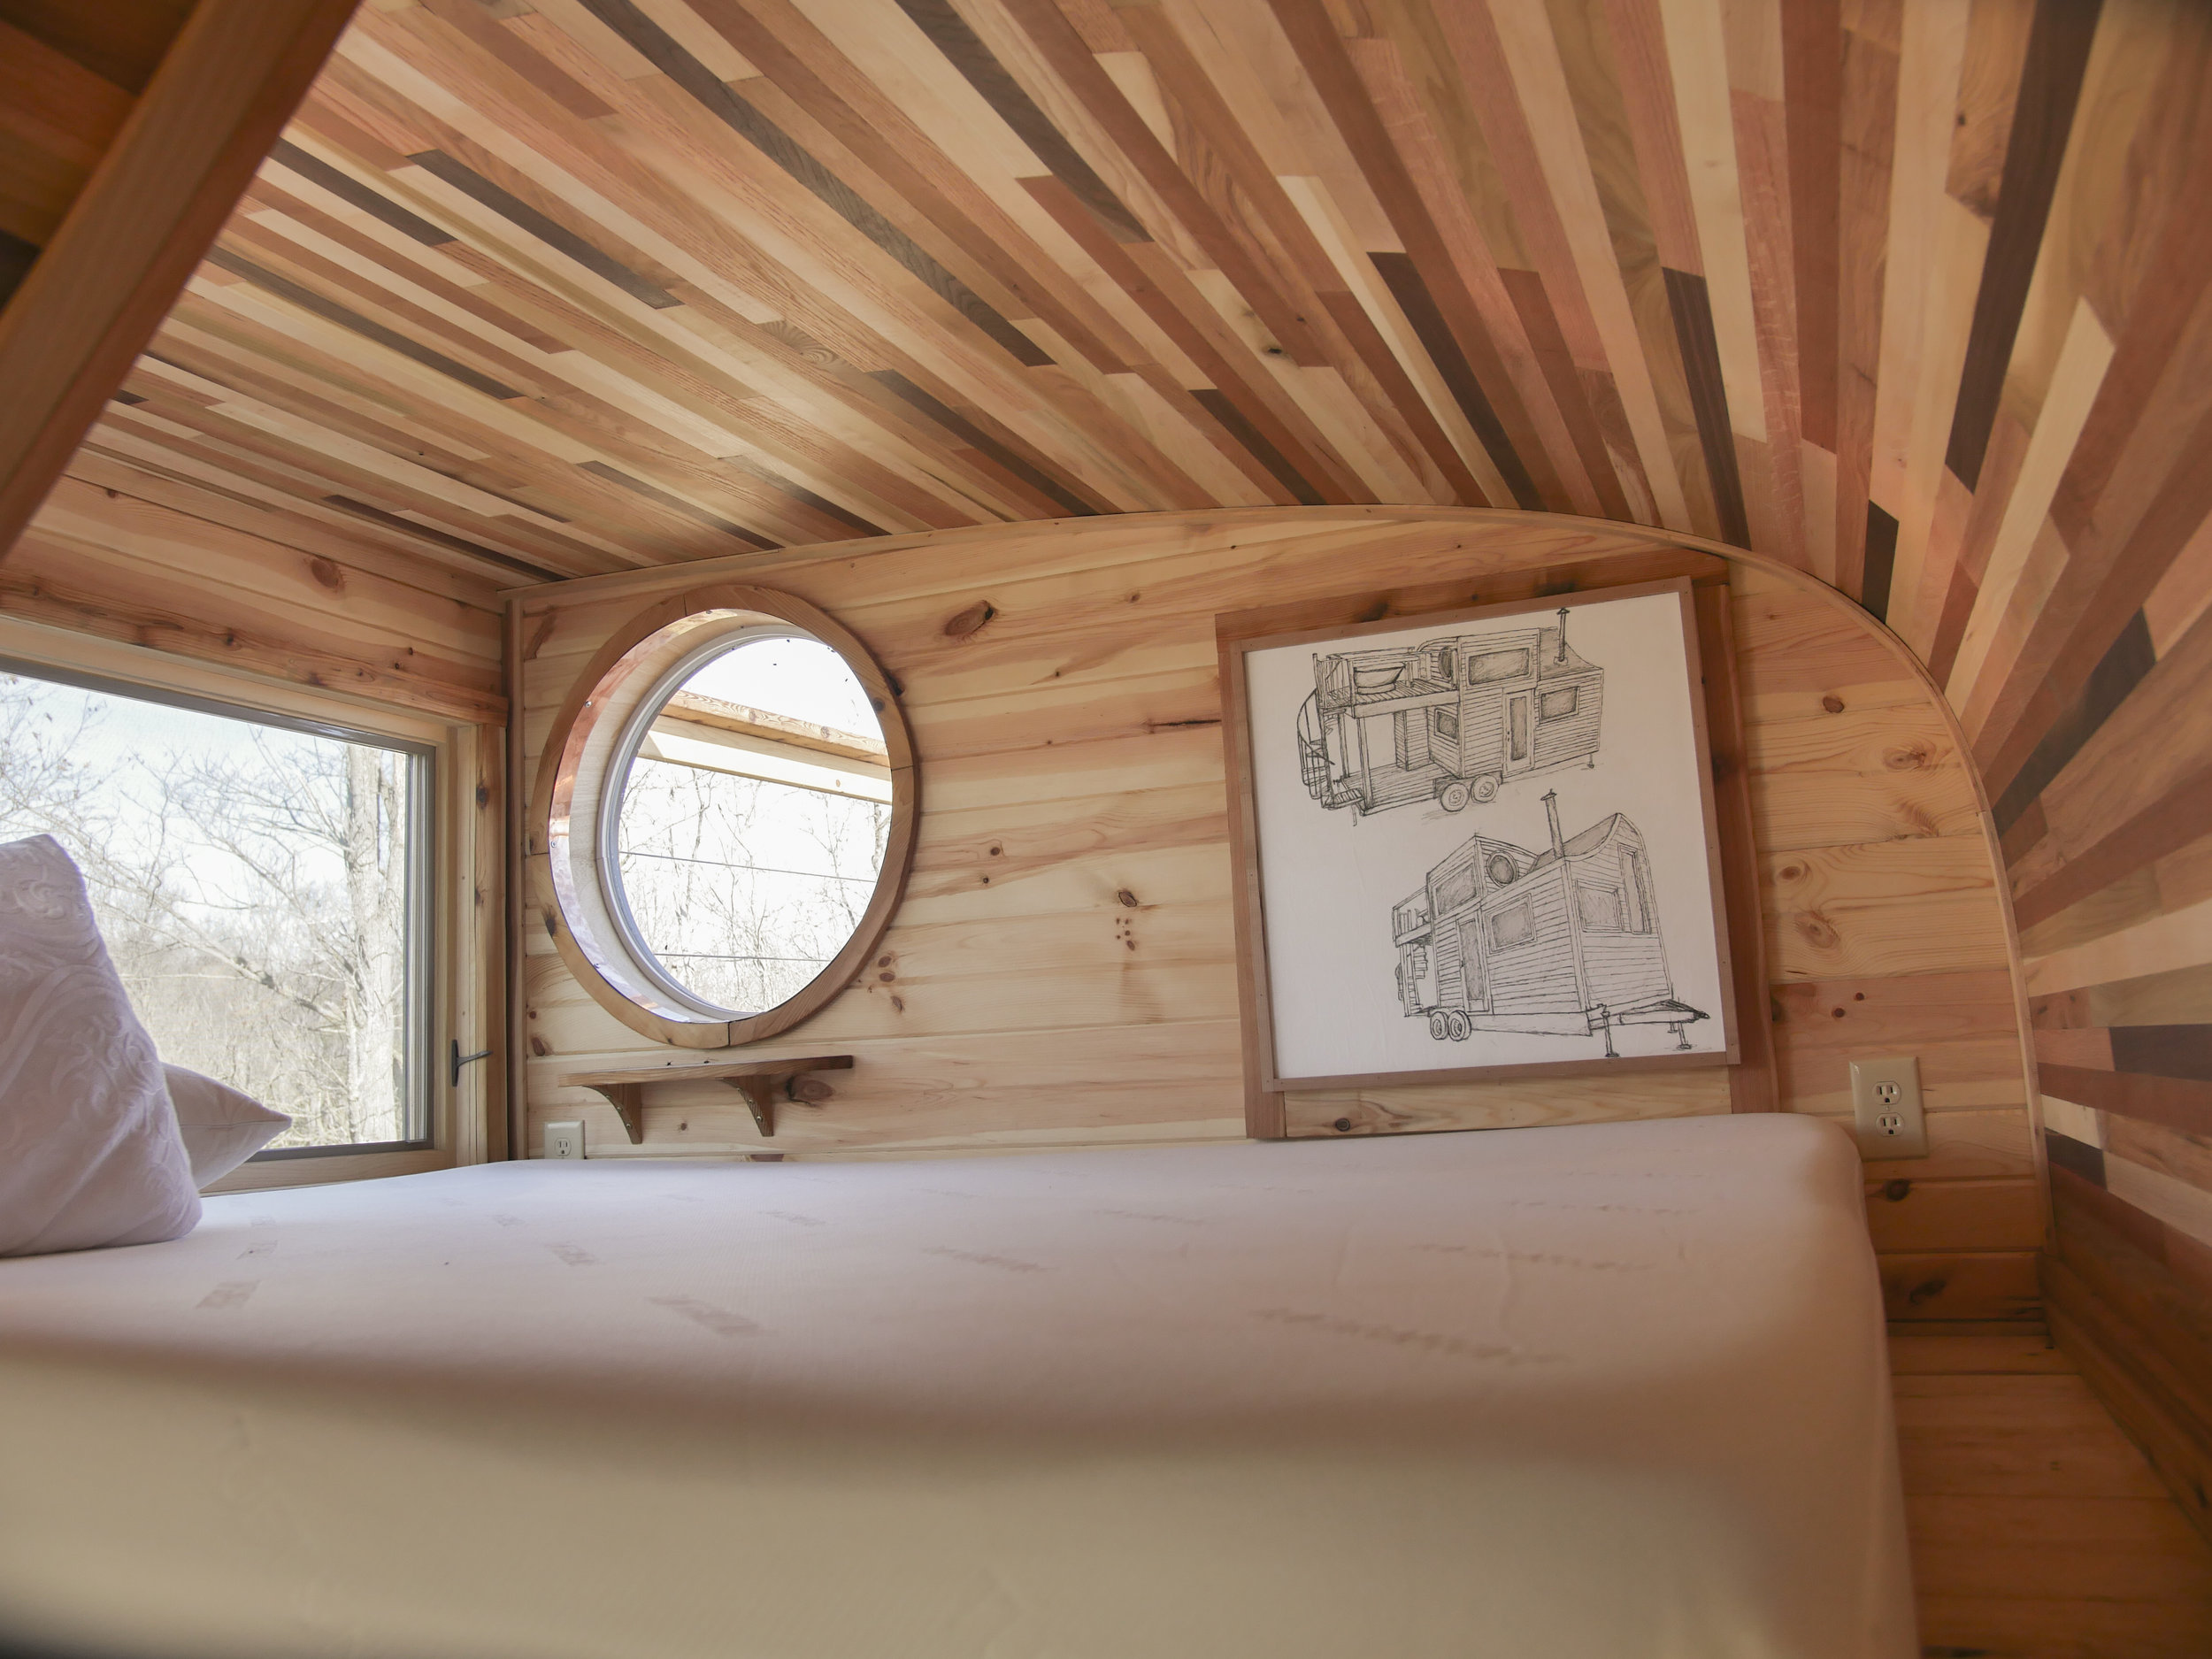 Honey On The Rock - Loft Bed with Curved Ceiling and Round Windows